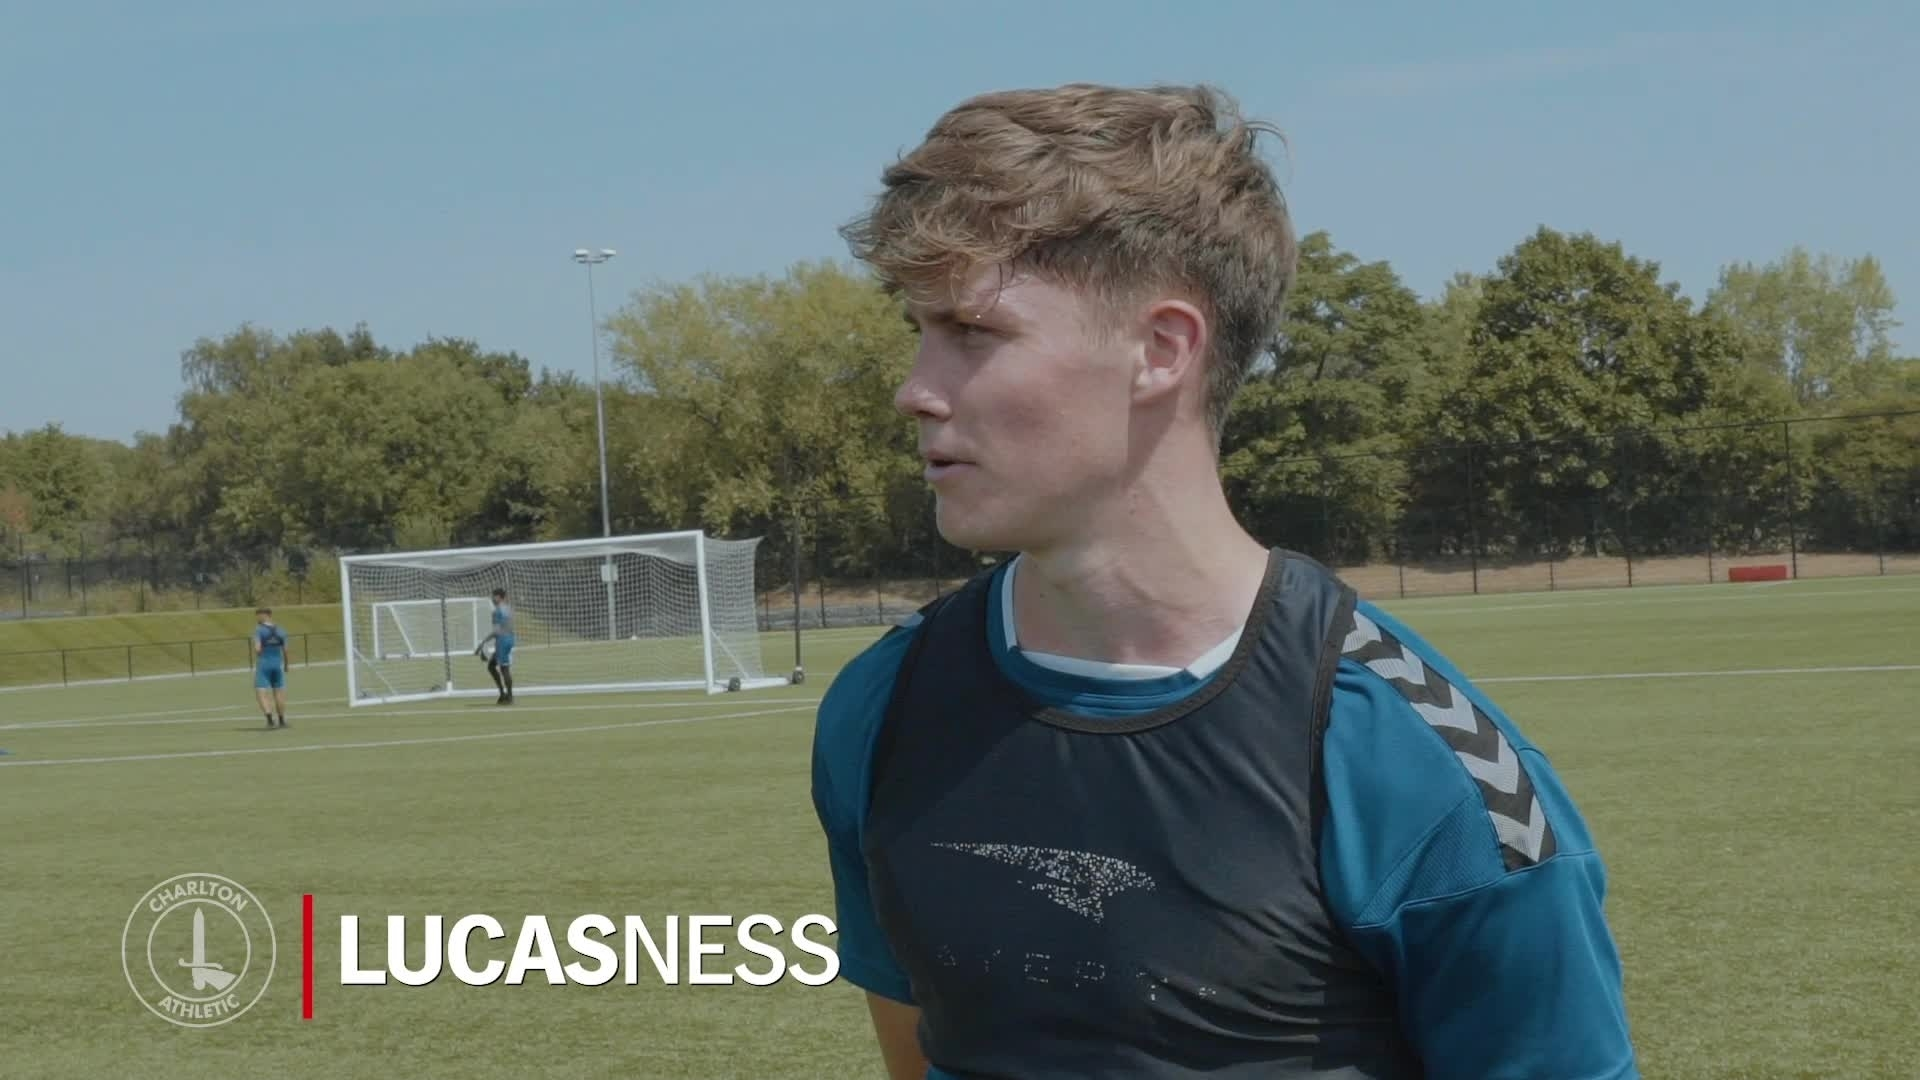 Lucas Ness on joining the Charlton academy (August 2020)